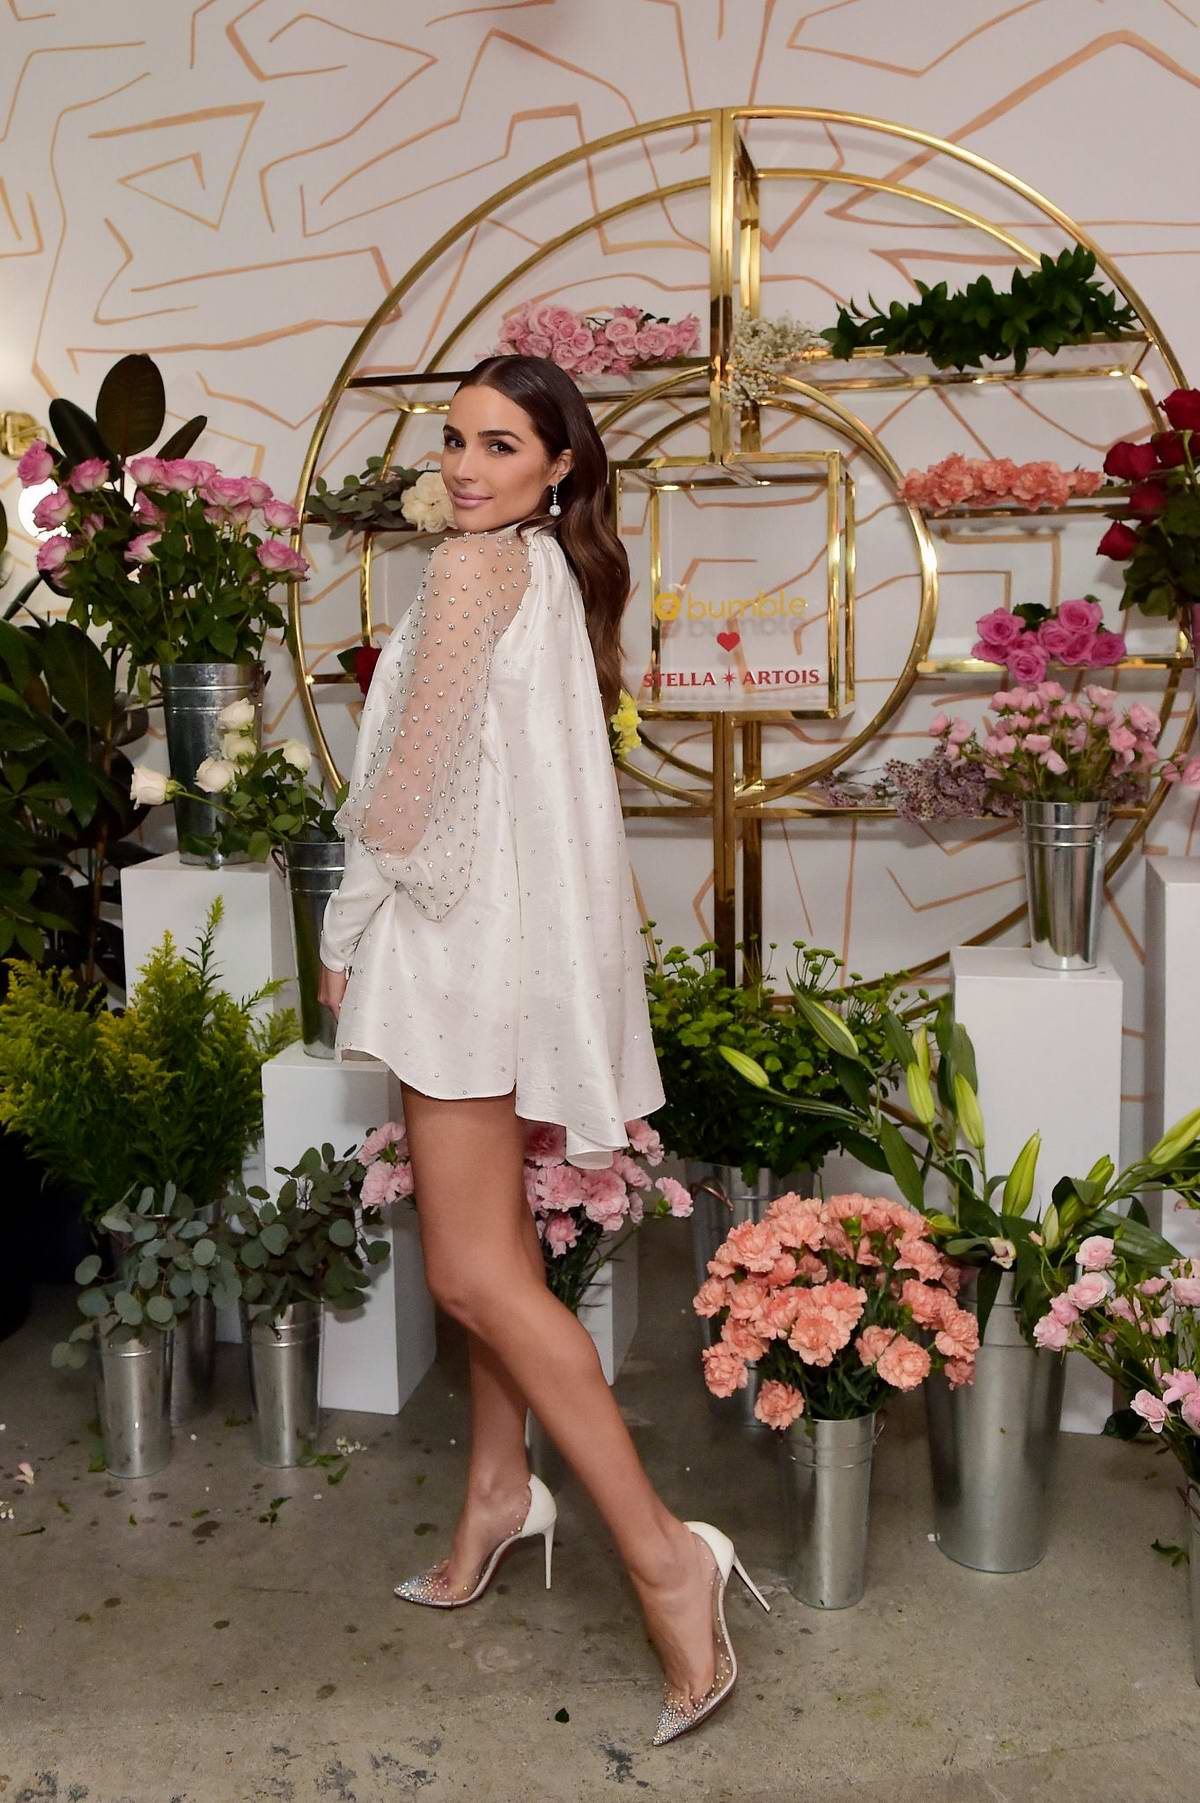 Olivia Culpo hosts a festive night at the 'Stella Heartois Experience' in Los Angeles